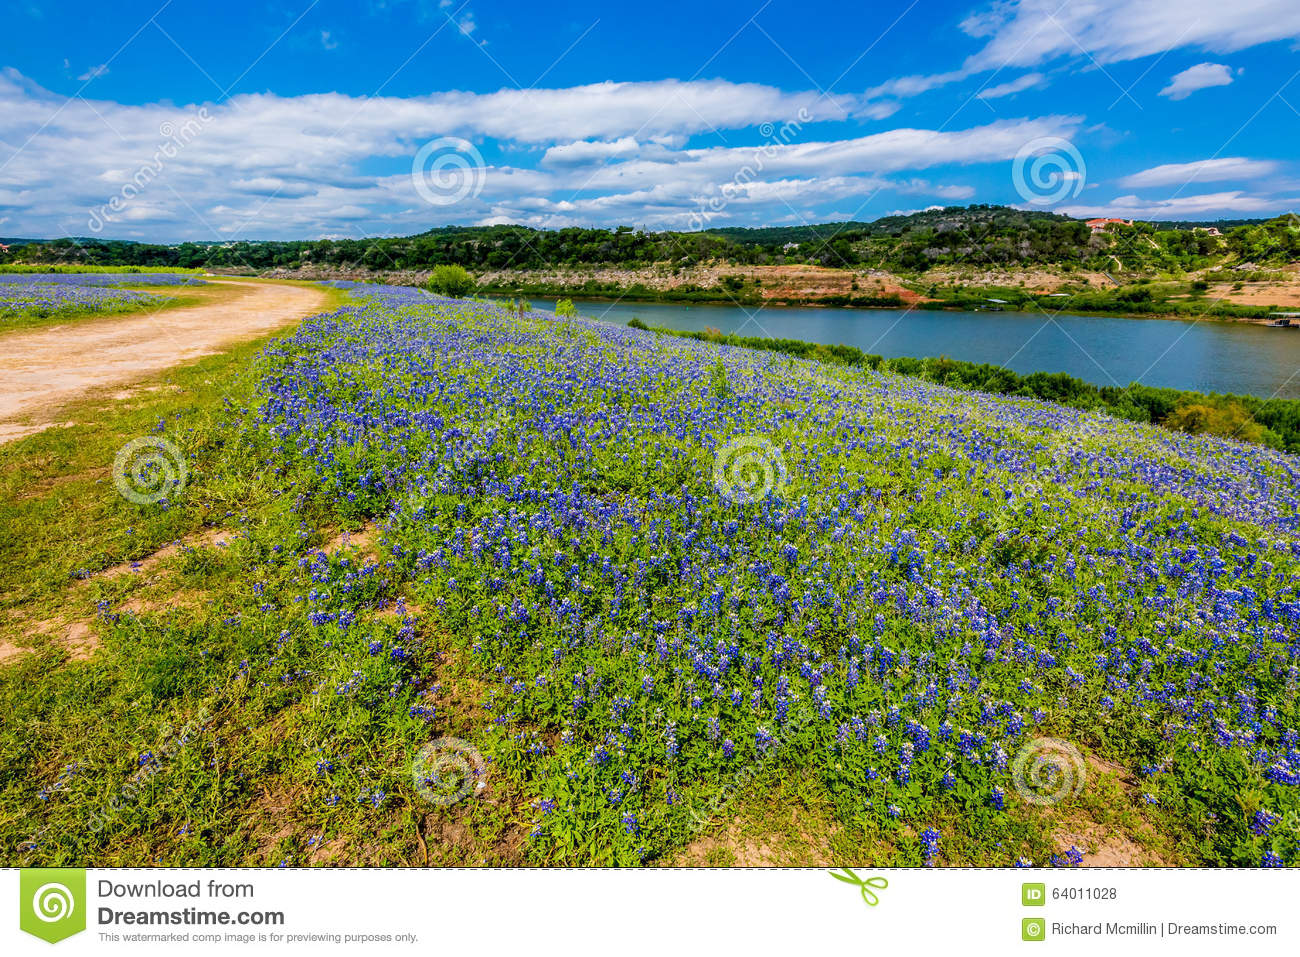 Opinião Texas Bluebonnet Wildflowers famoso no Colorado Riv